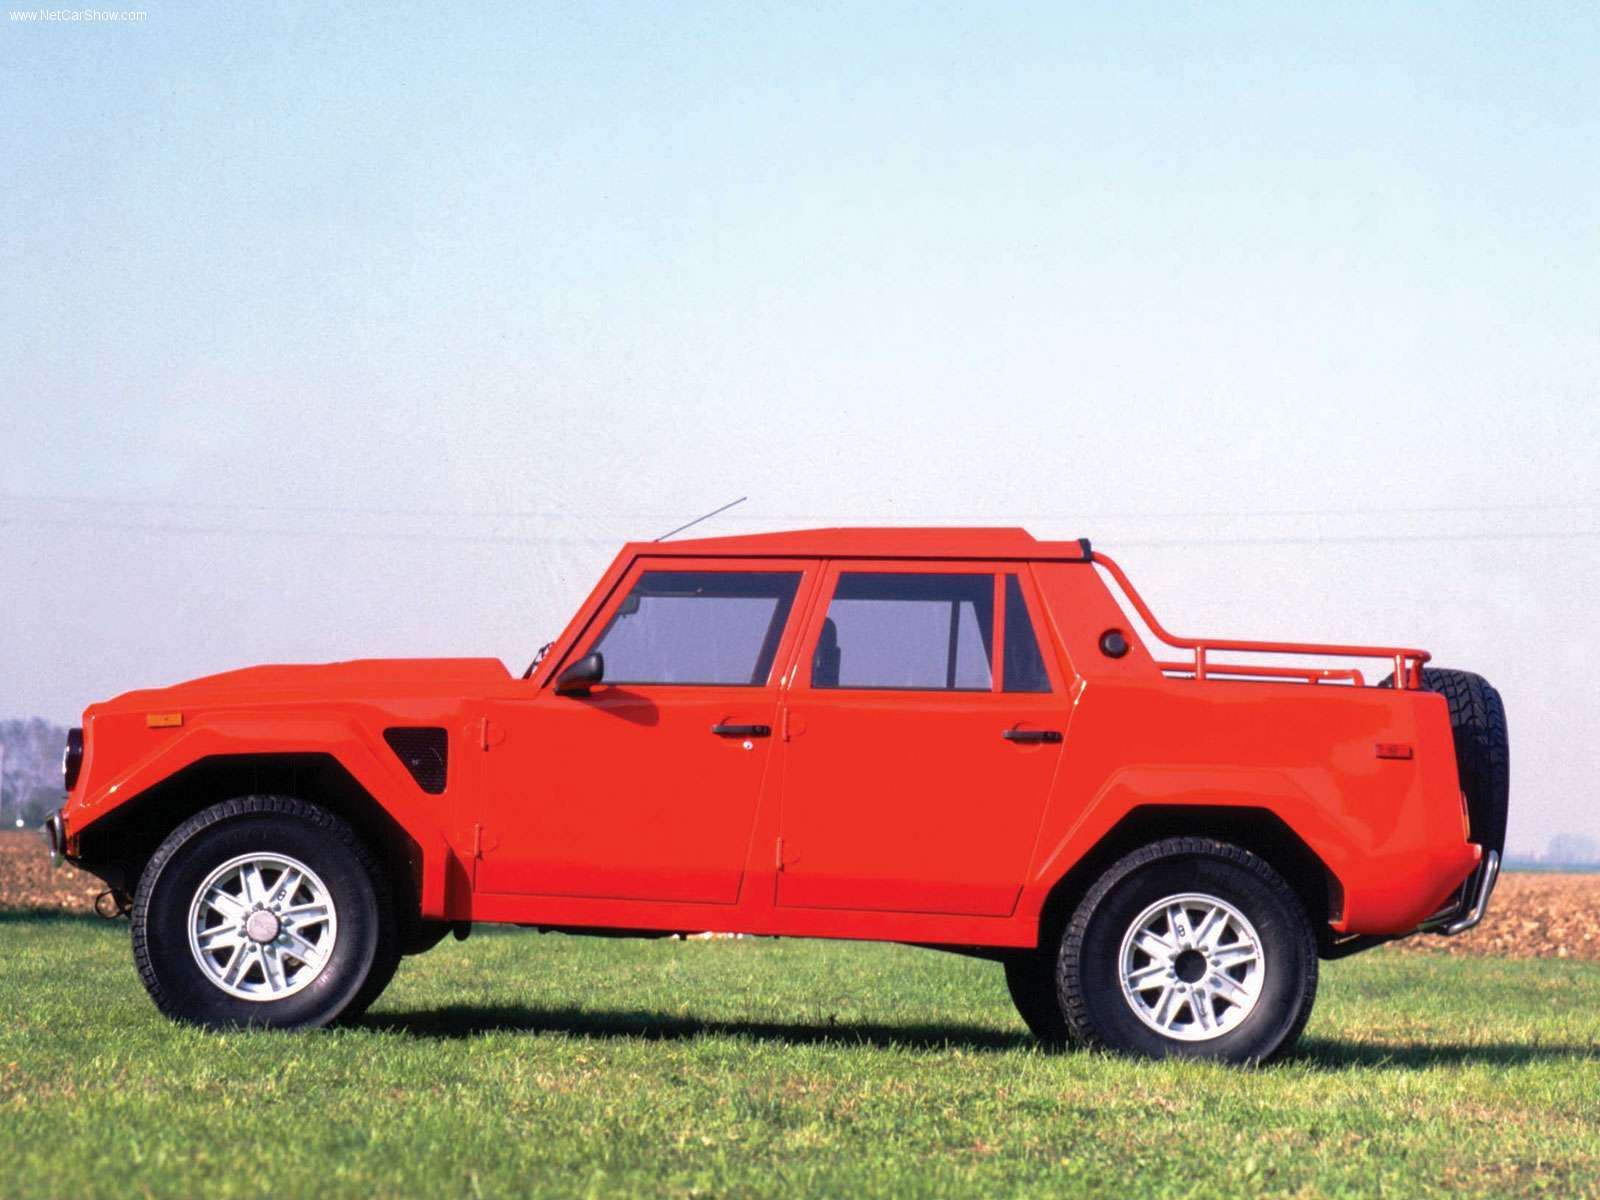 Lamborghini LM photo 32078